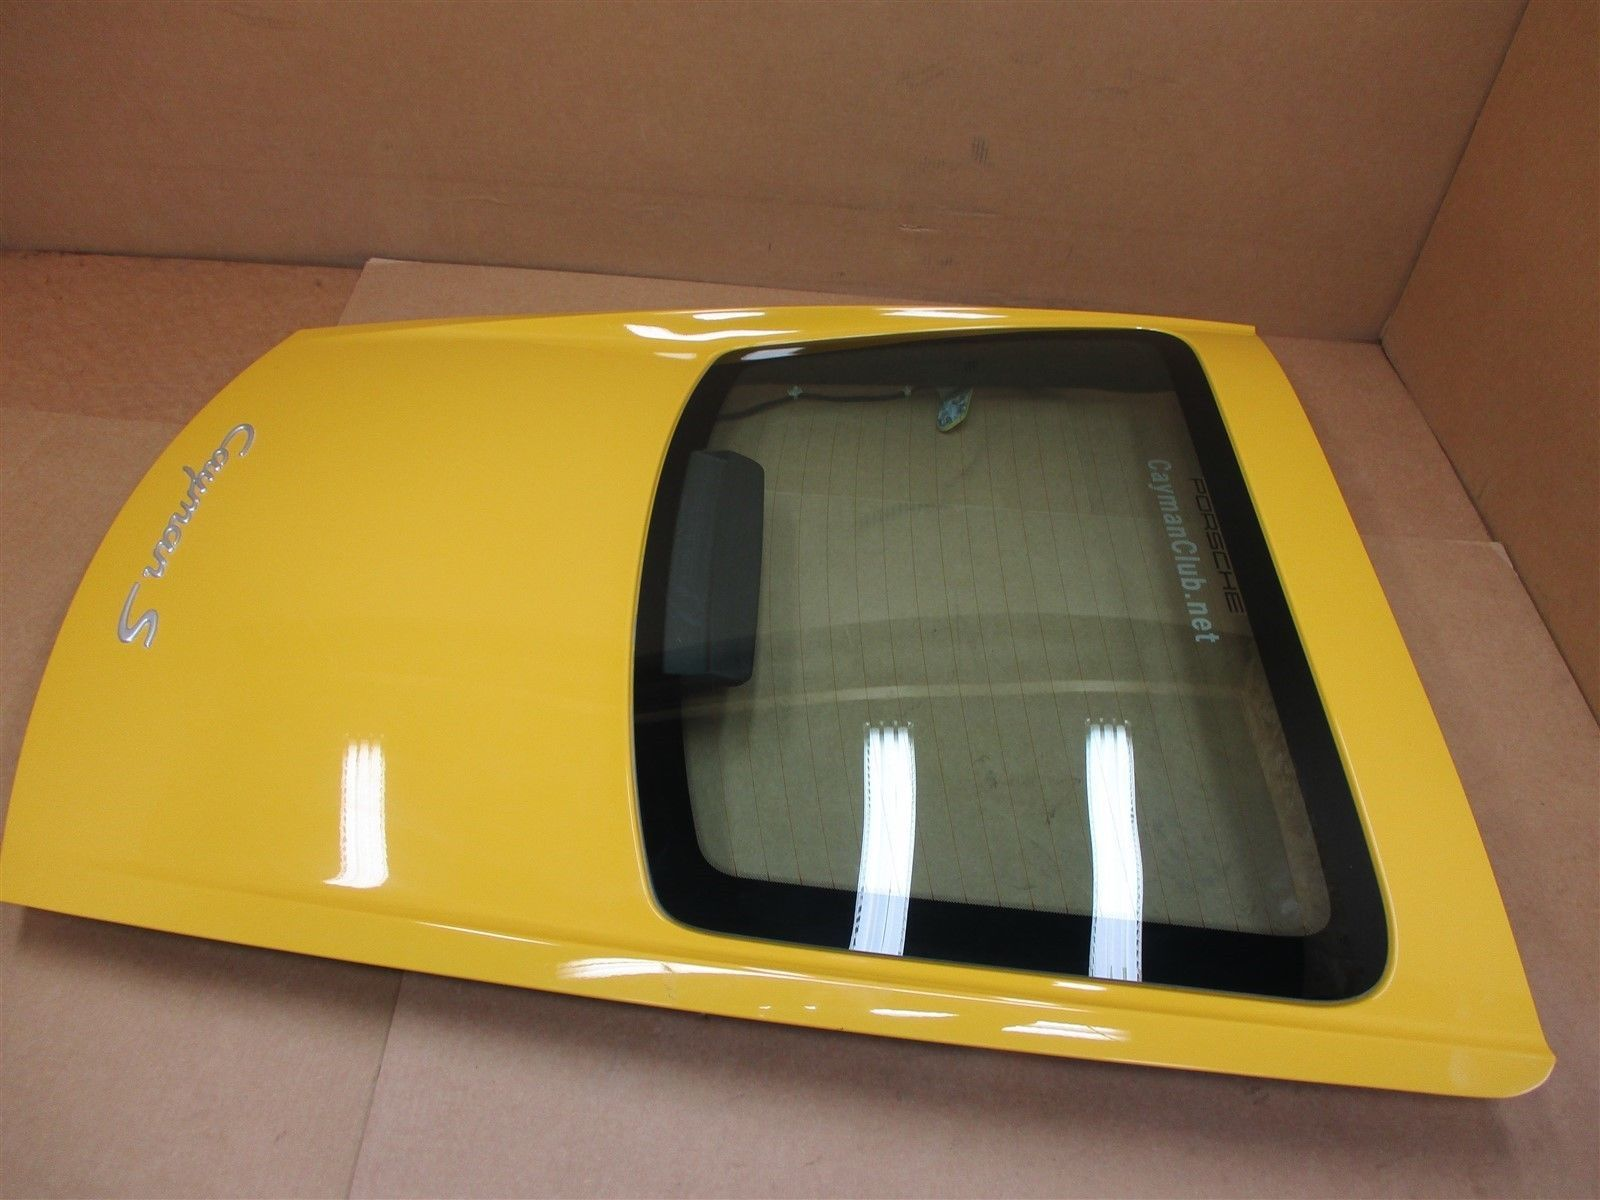 06 Cayman S RWD Porsche 987 REAR EXTERIOR HATCH TRIM 98761267000 WINDOW 53,571